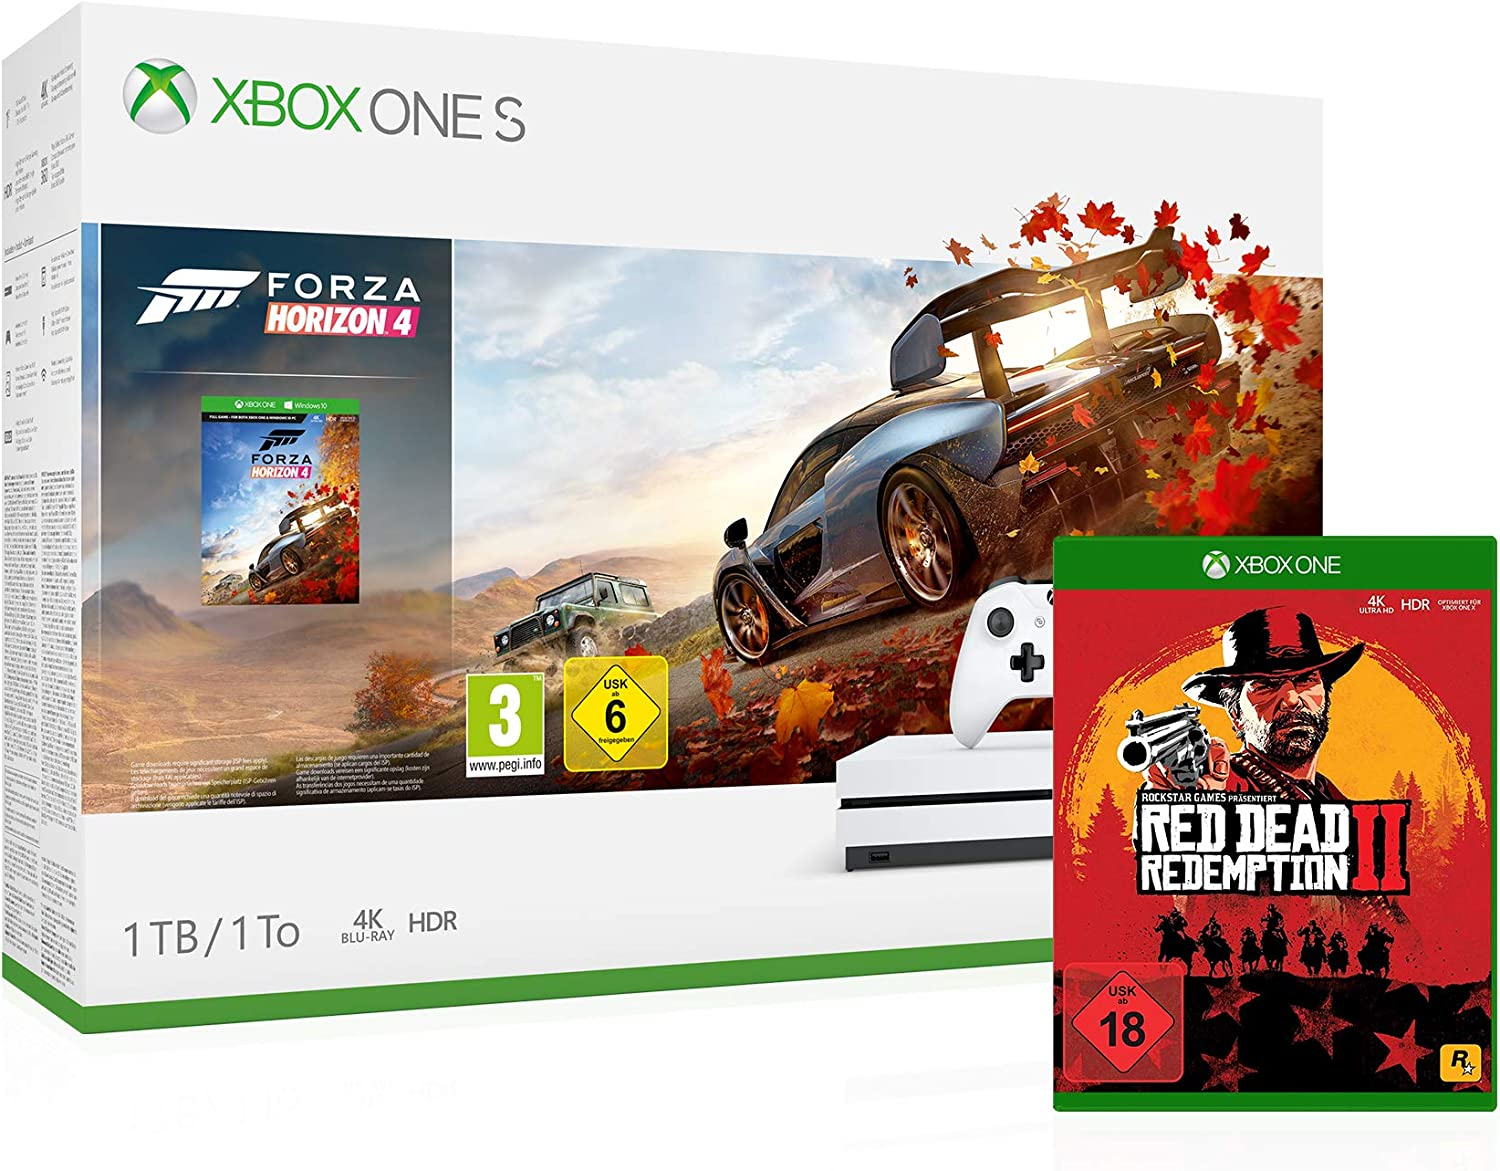 Xbox One S 1TB Forza Horizon 4 Bundle + Red Dead Redemption 2 ...